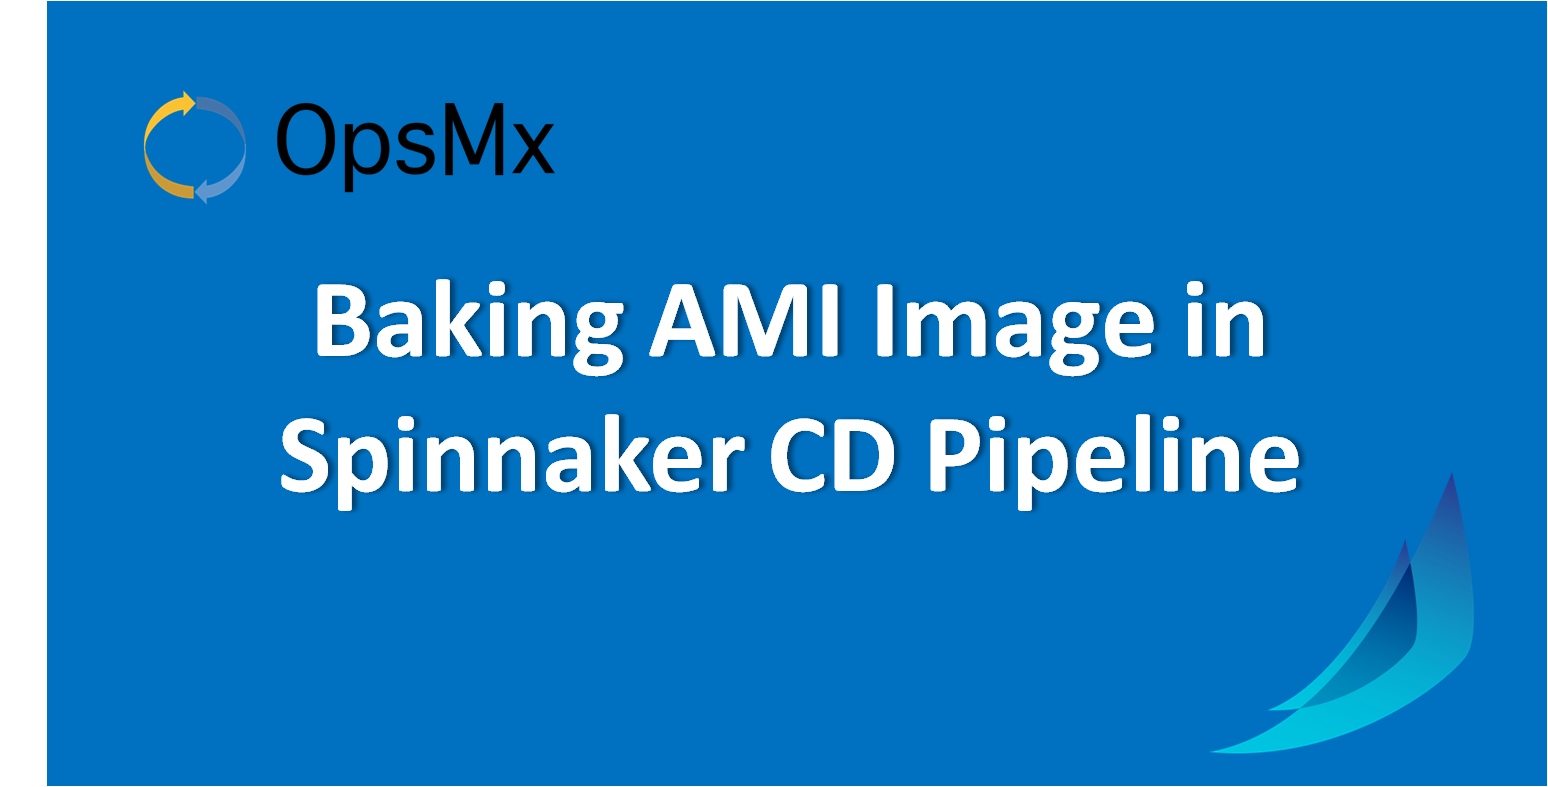 Baking AMI Image in Spinnaker CD Pipeline